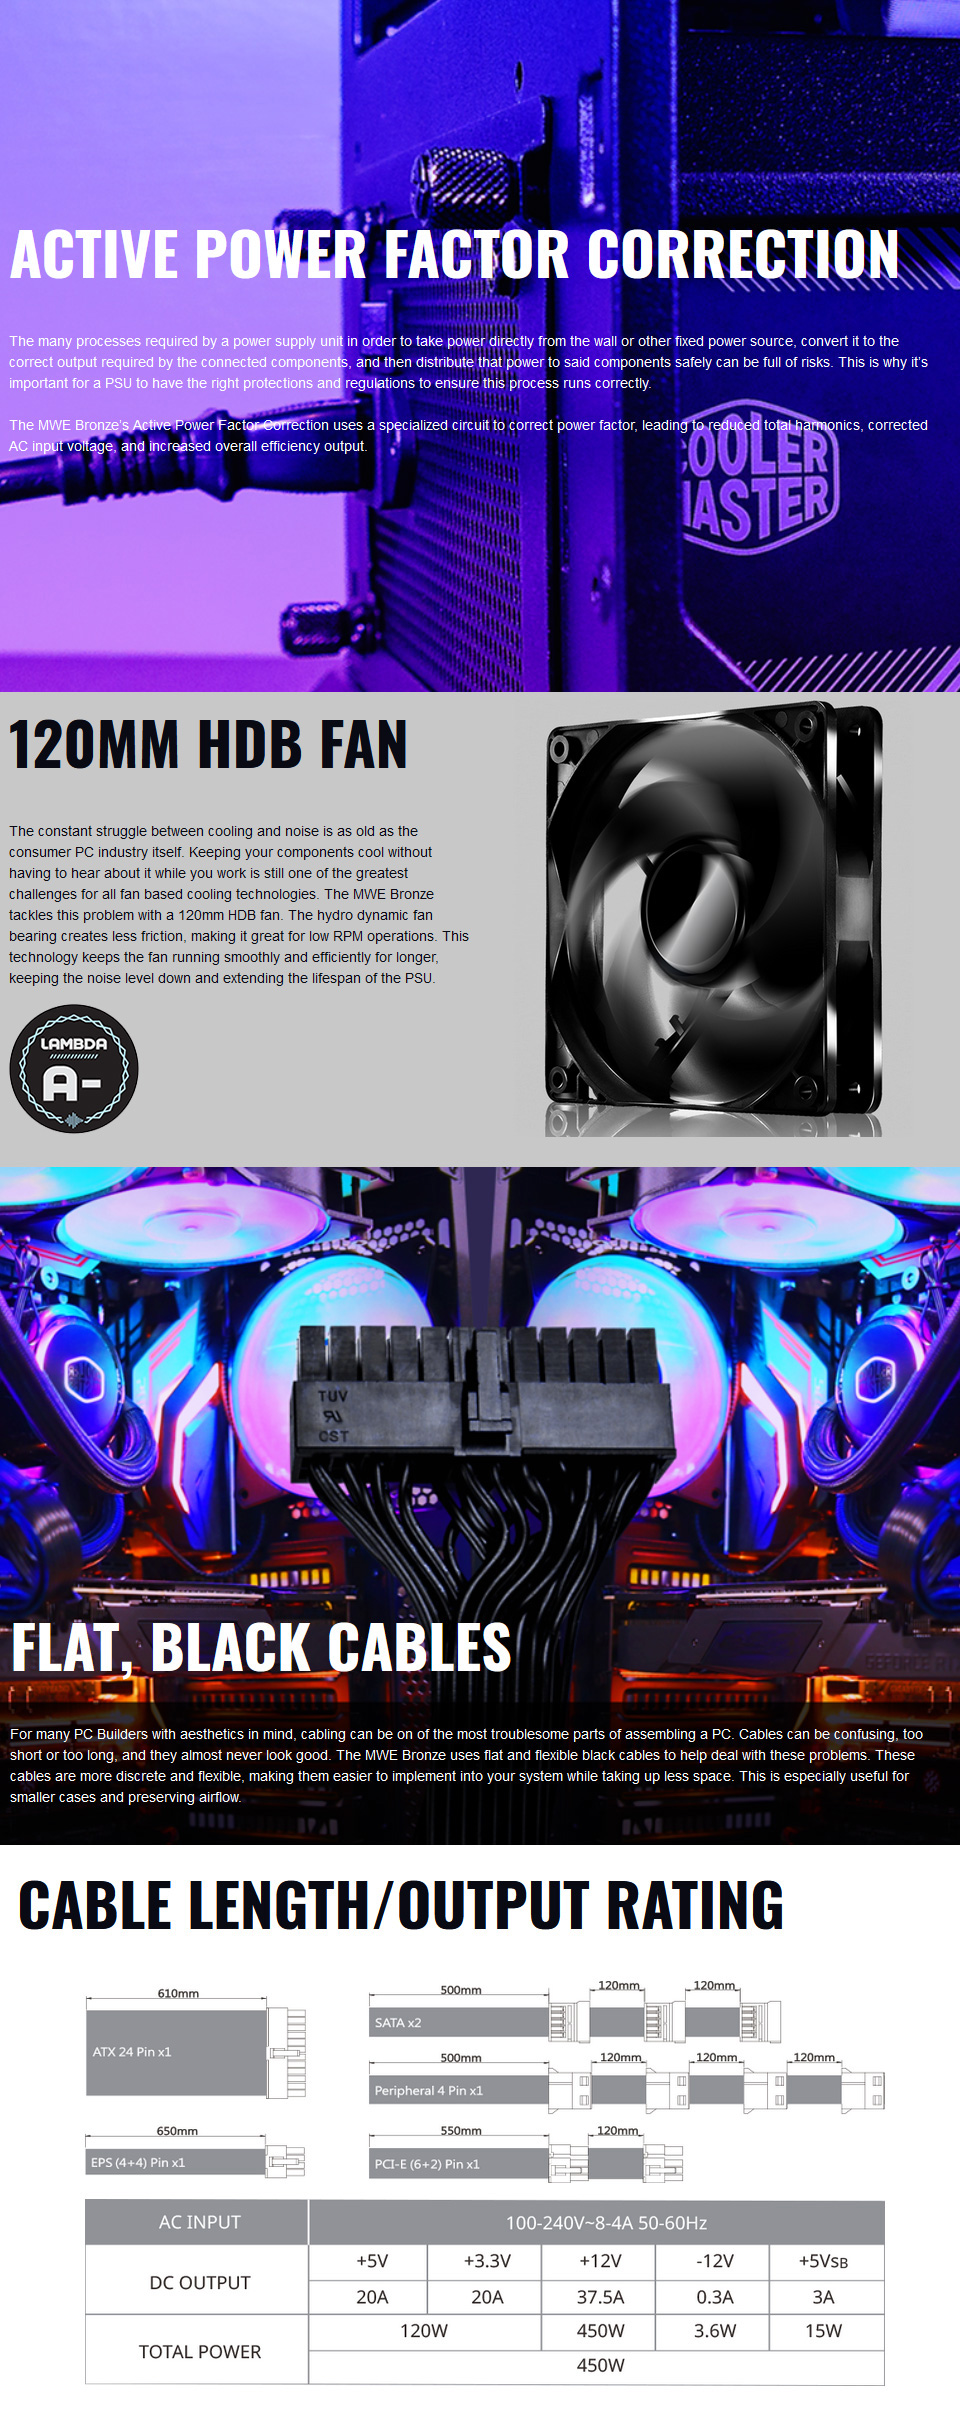 Cooler Master MWE Bronze V2 450W Power Supply features 2